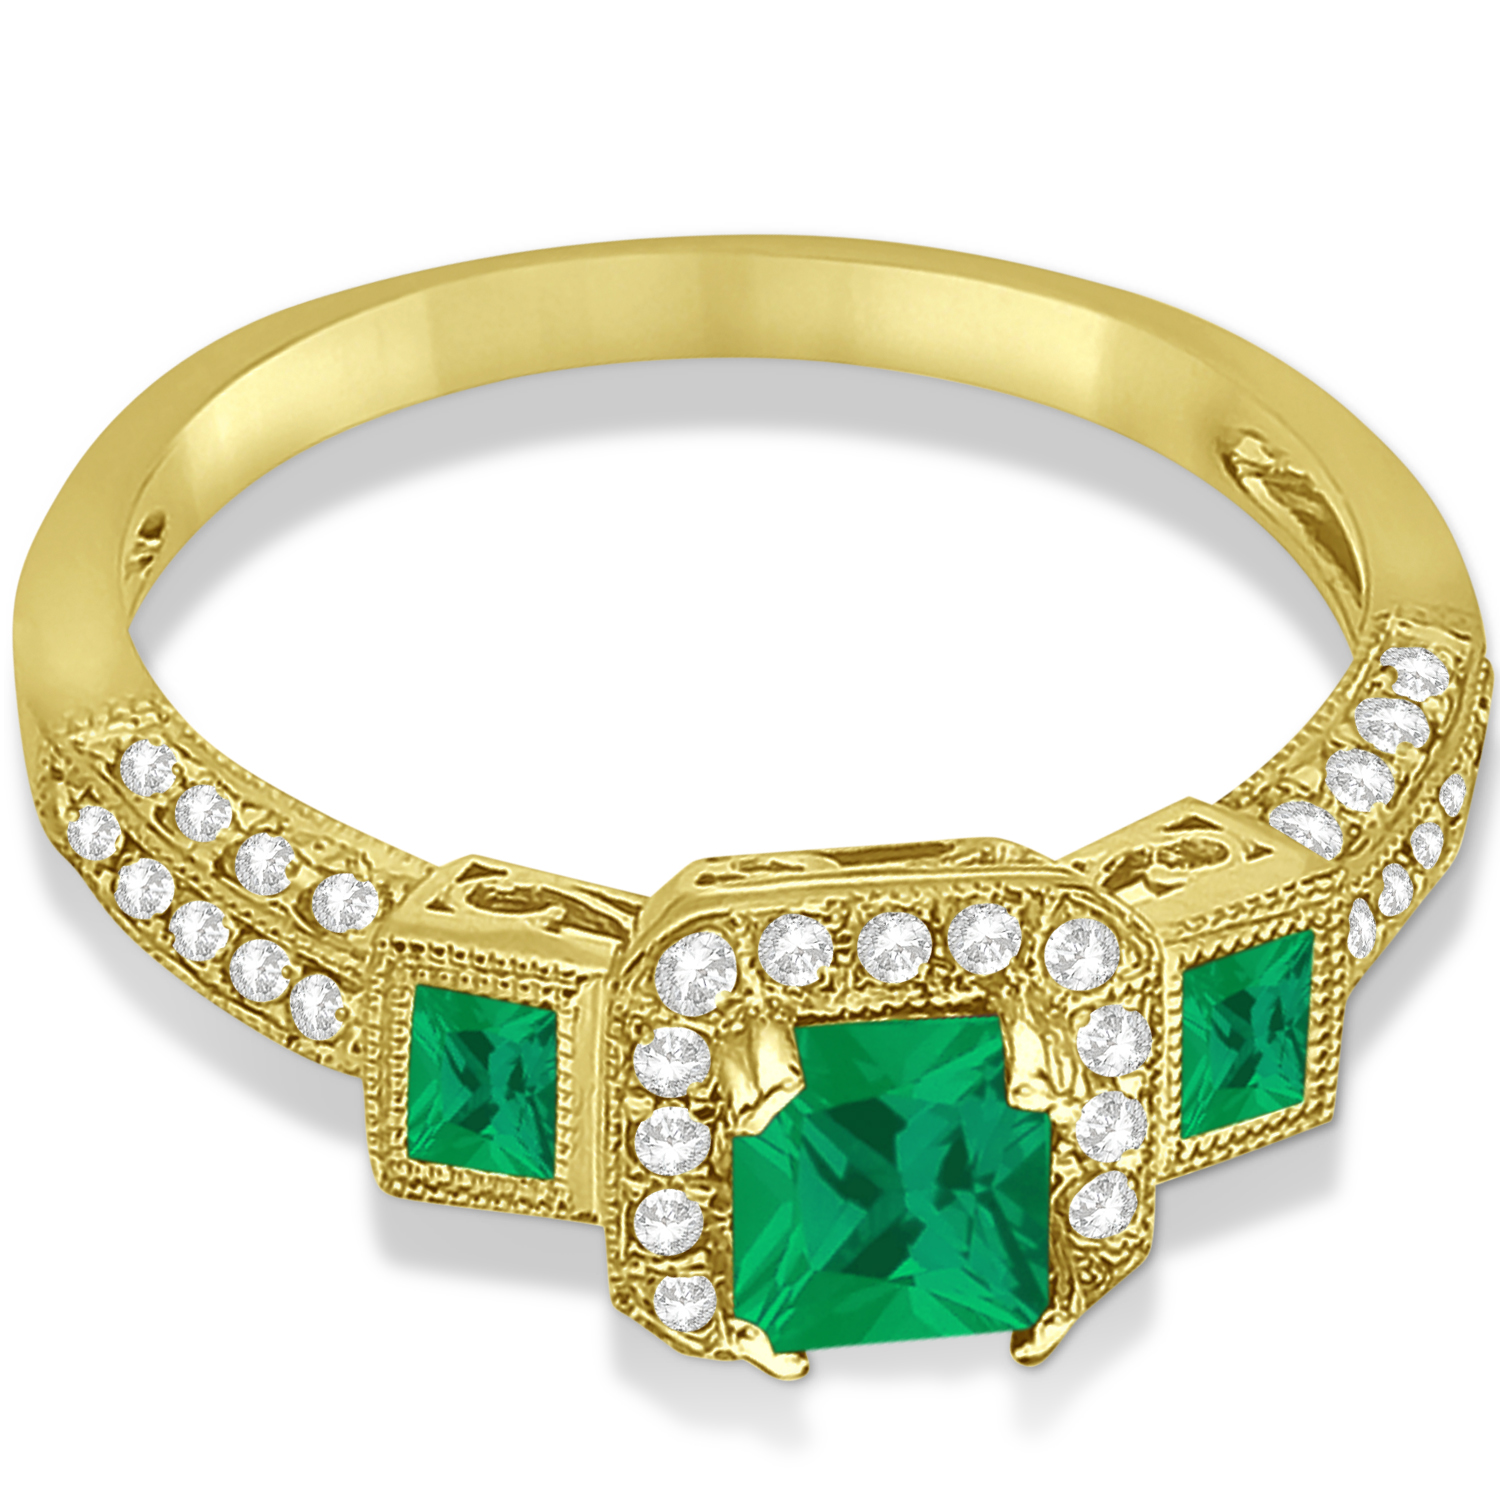 Emerald & Diamond Engagement Ring in 14k Yellow Gold (1.35ctw)